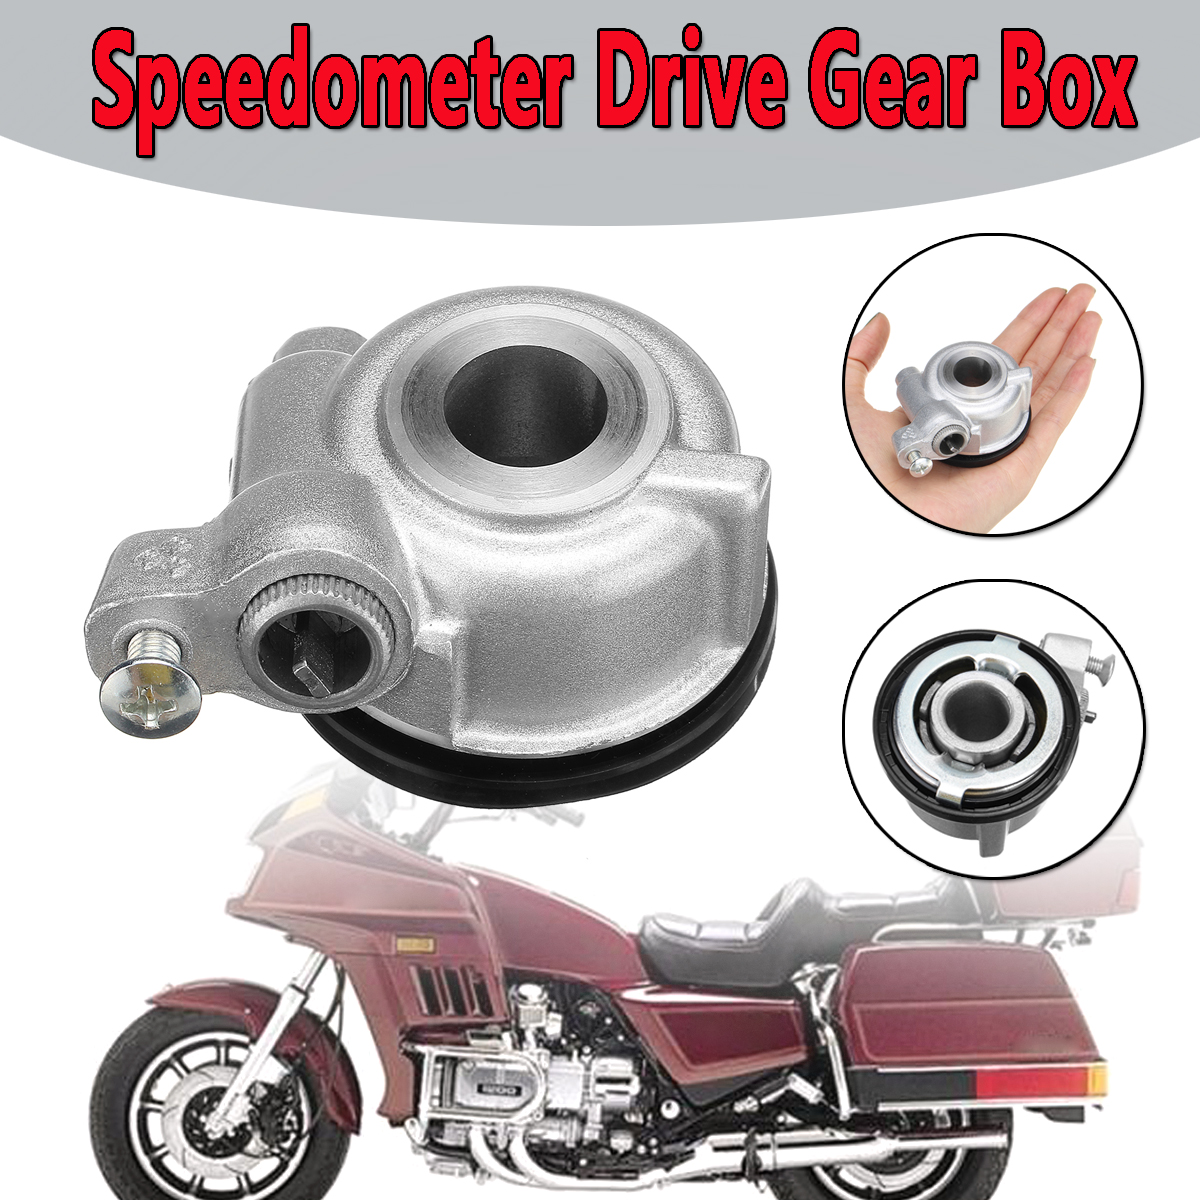 hight resolution of motorcycle speedometer drive gear box new fits for honda goldwing gl1200 1984 1987 scooter parts mg9 013 in covers ornamental mouldings from automobiles